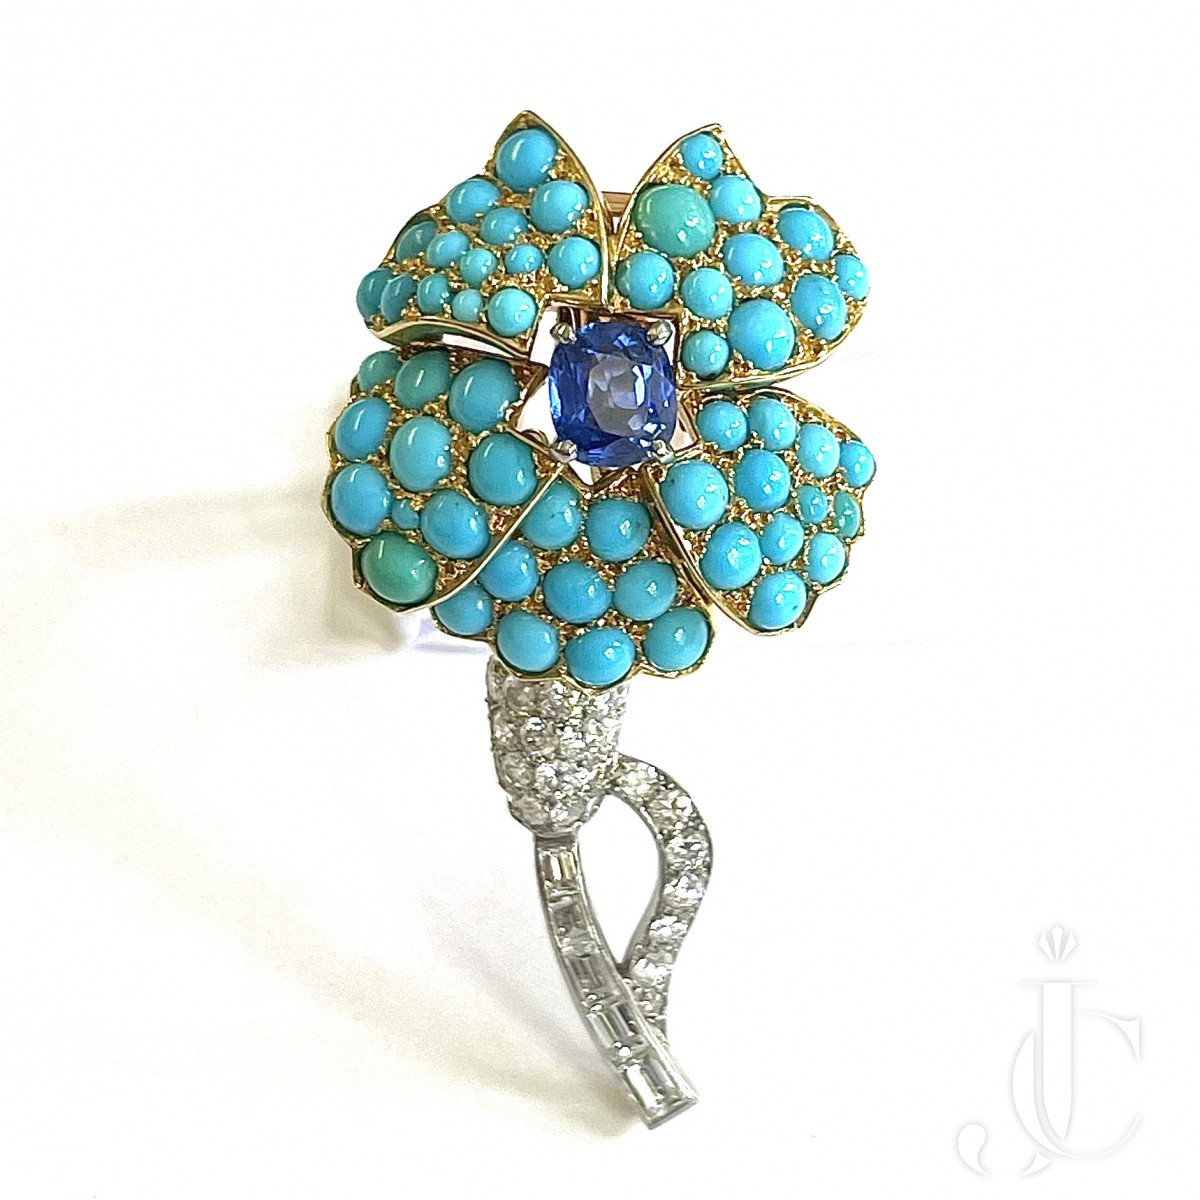 Cartier Turquoise Sapphire Brooch